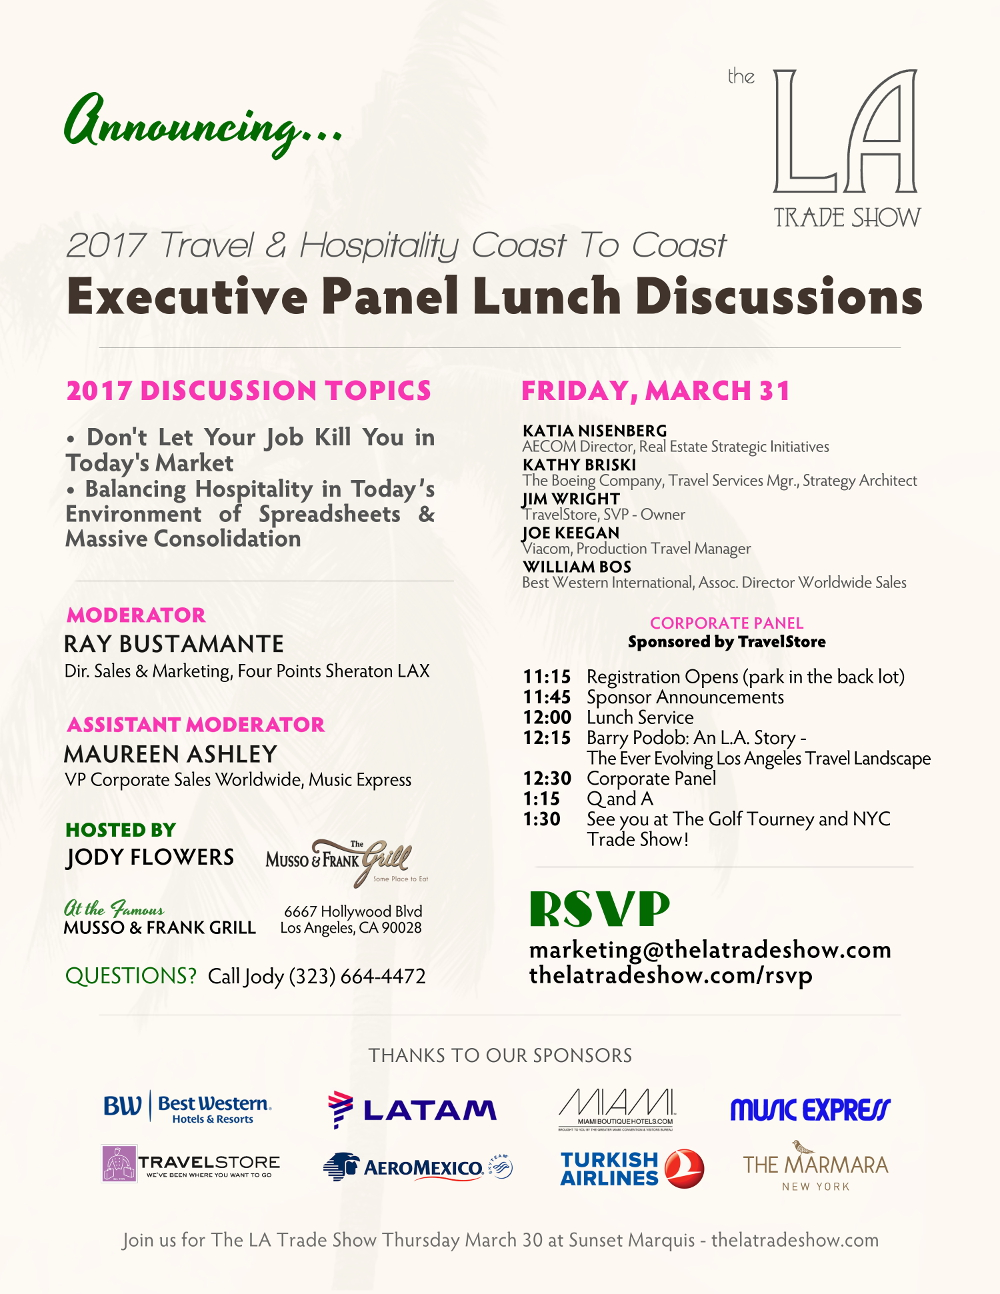 The L.A. Trade Show 2017 Corporate Panel (Click to see larger version)